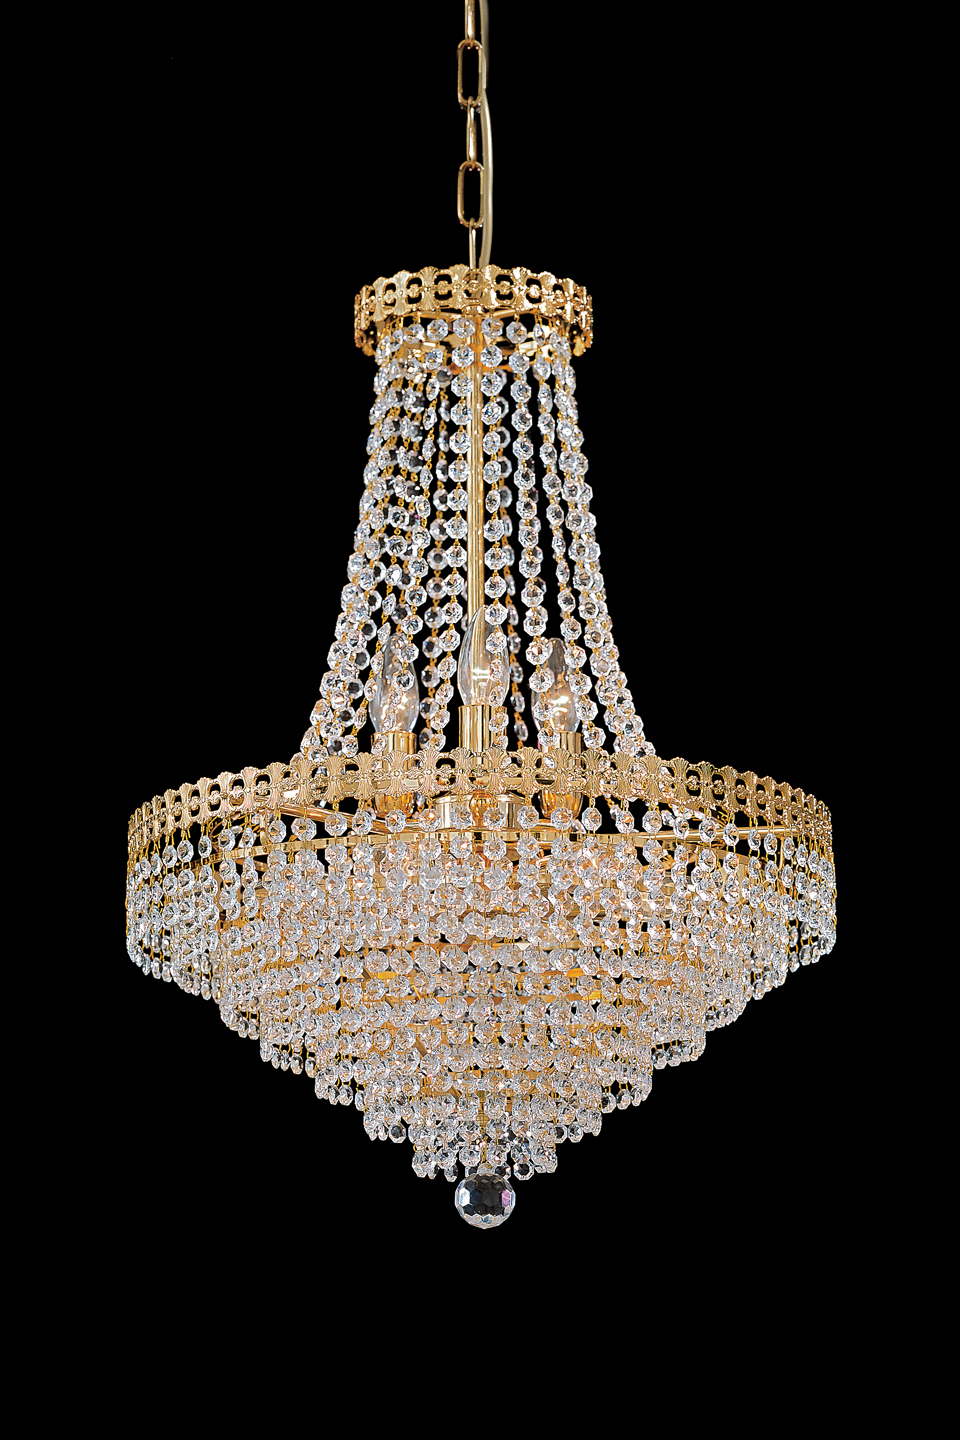 Gold And Crystal Chandelier 10 Lights Masiero Murano